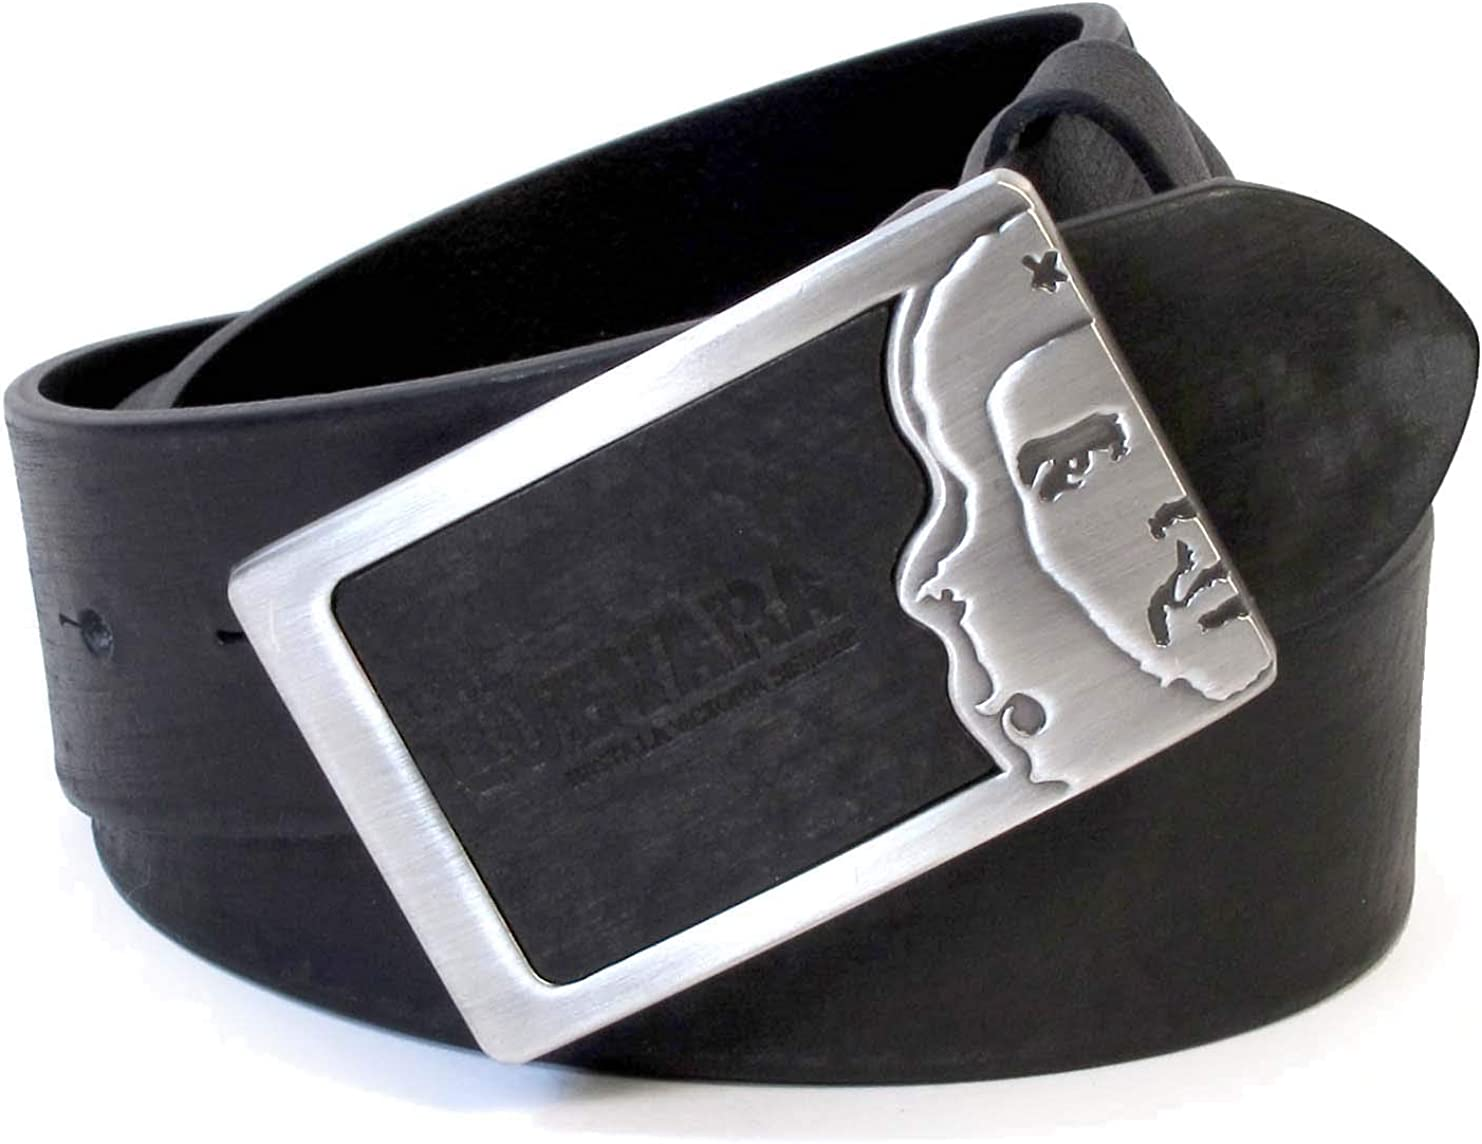 Mens Real Genuine Leather Belt Black Brown White 1.5 Wide S-L Casual Jeans CU6